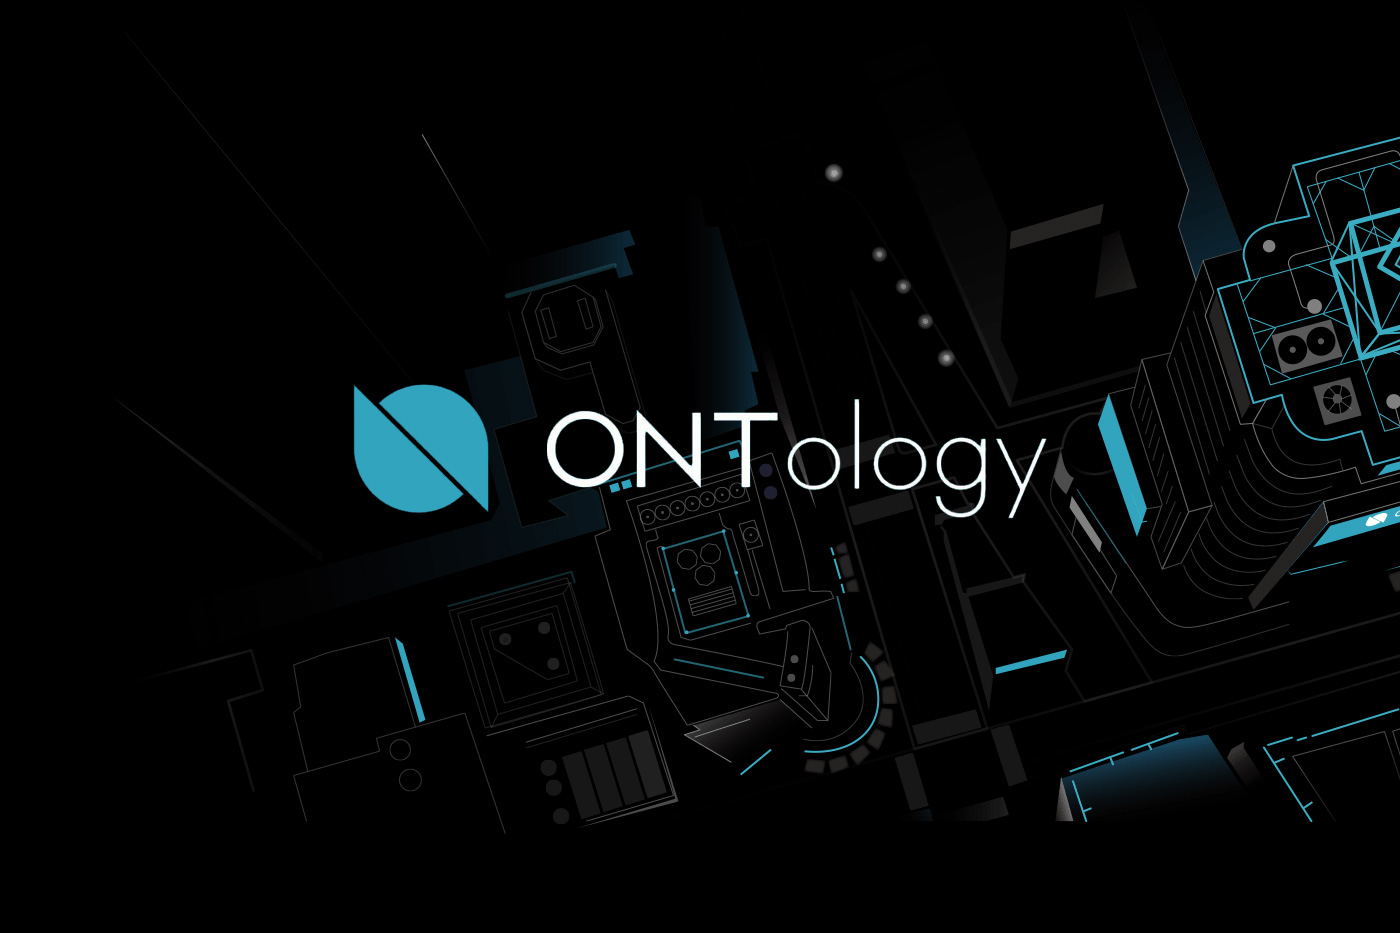 Ontology Takes After NEO with Passive 'Ontology GAS' (ONG) Income